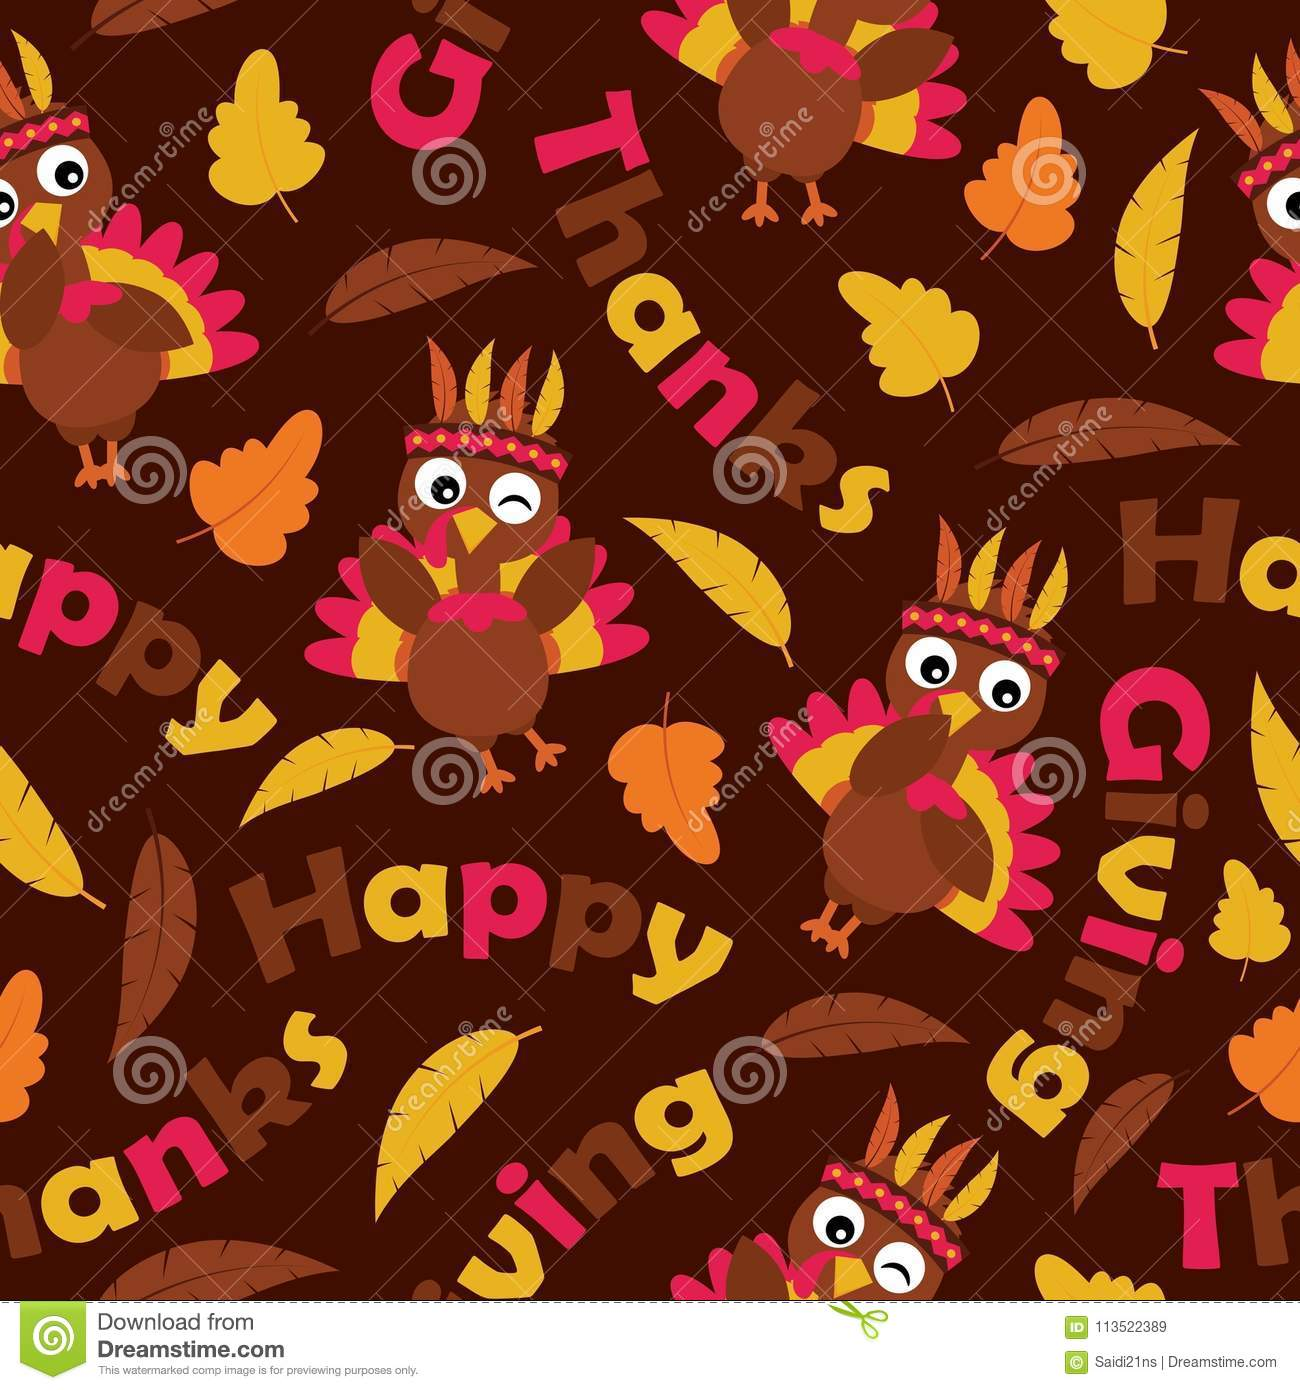 Download Cute Turkeys And Maple Leaves On Brown Background Vector Cartoon Suitable For Thanksgiving Wallpaper Stock